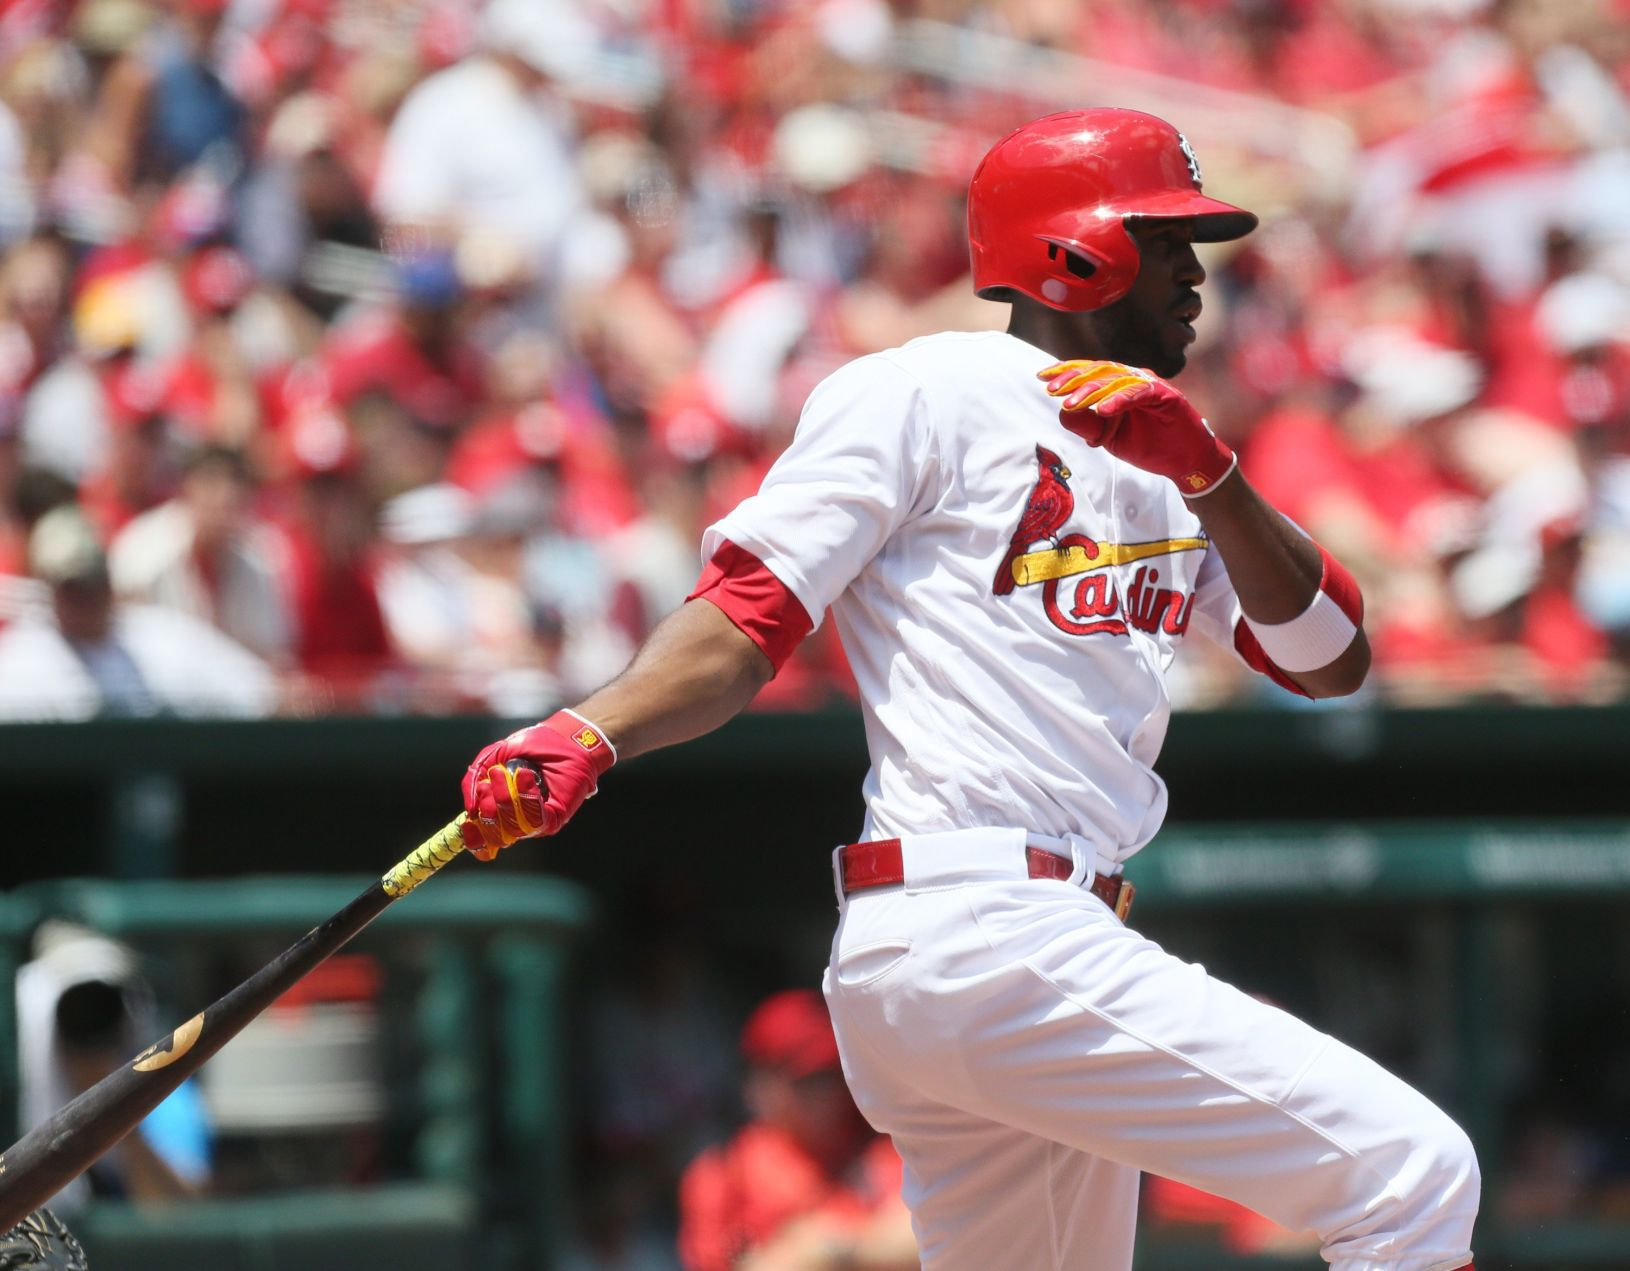 Cardinals activate Fowler, send Piscotty to Memphis